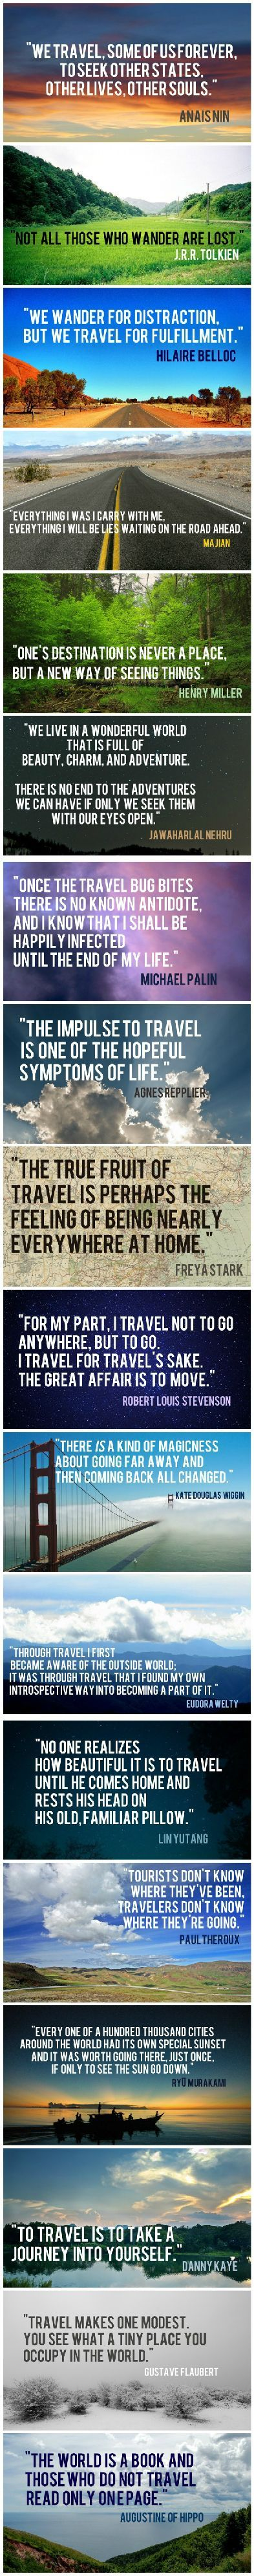 18 Travel Quotes to Feed Your Sense of Wanderlust | Whether you're an avid traveler who's never without a suitcase, or a homebody searching for a momentary escape from your daily routine, these quotes will speak to your sense of #wanderlust.